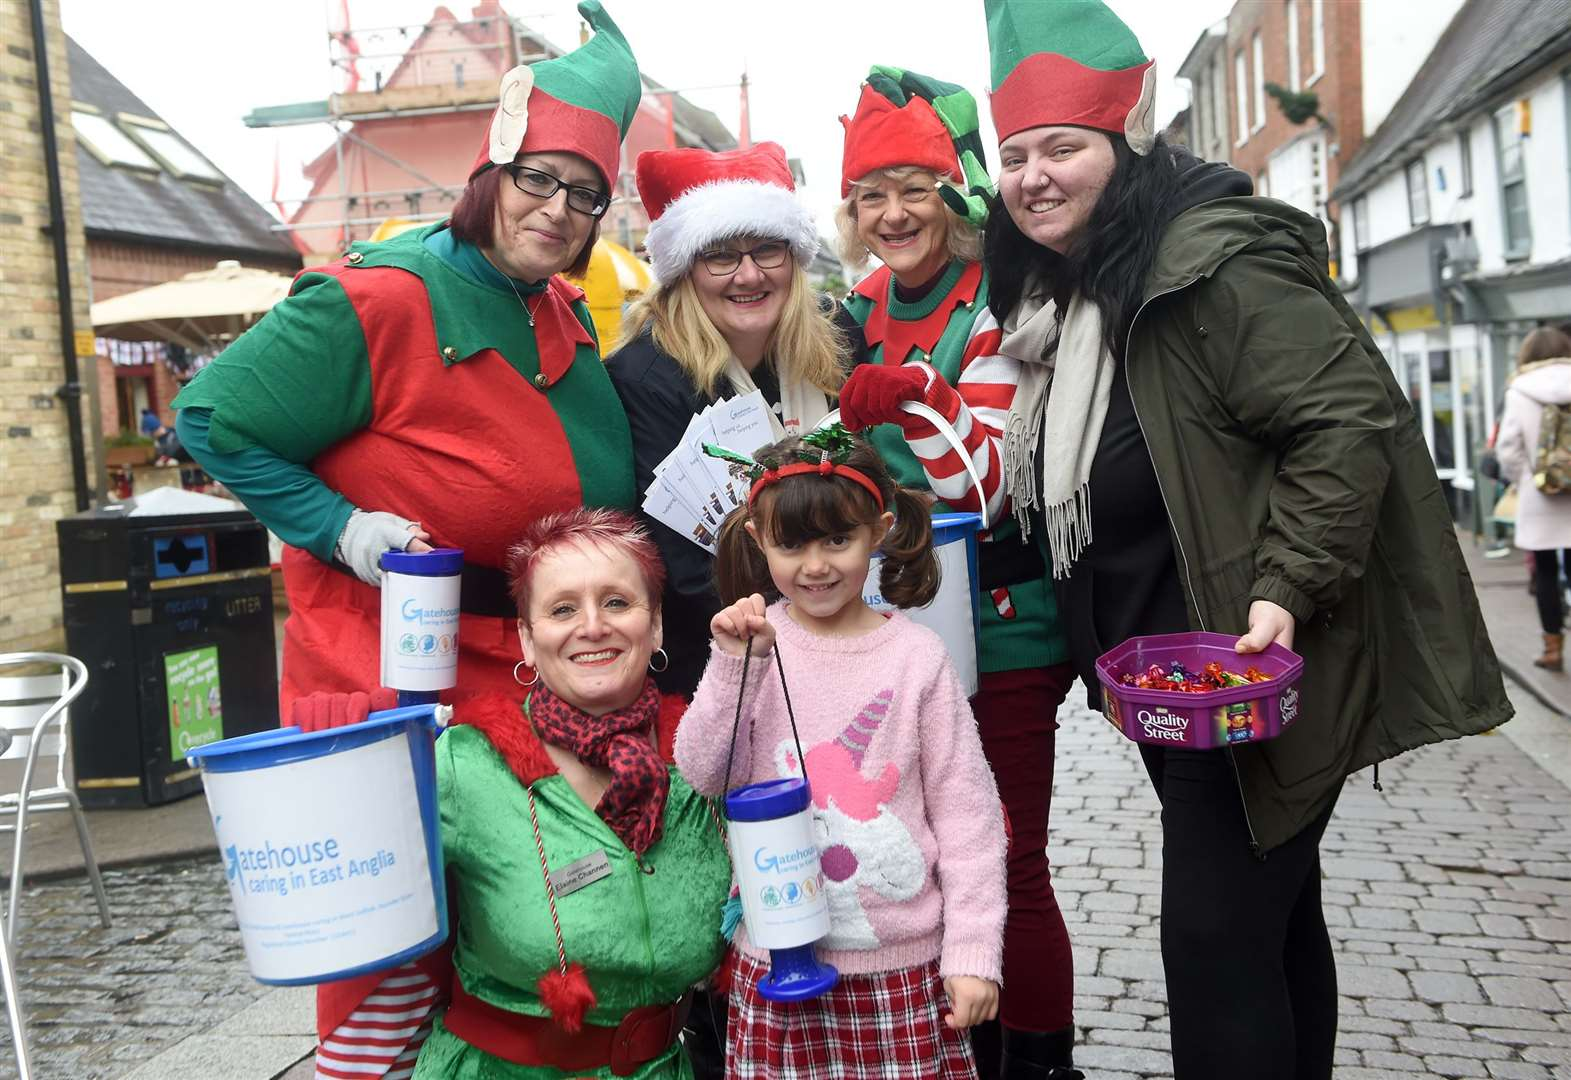 Crowds of 130,000 attended Bury Christmas Fayre